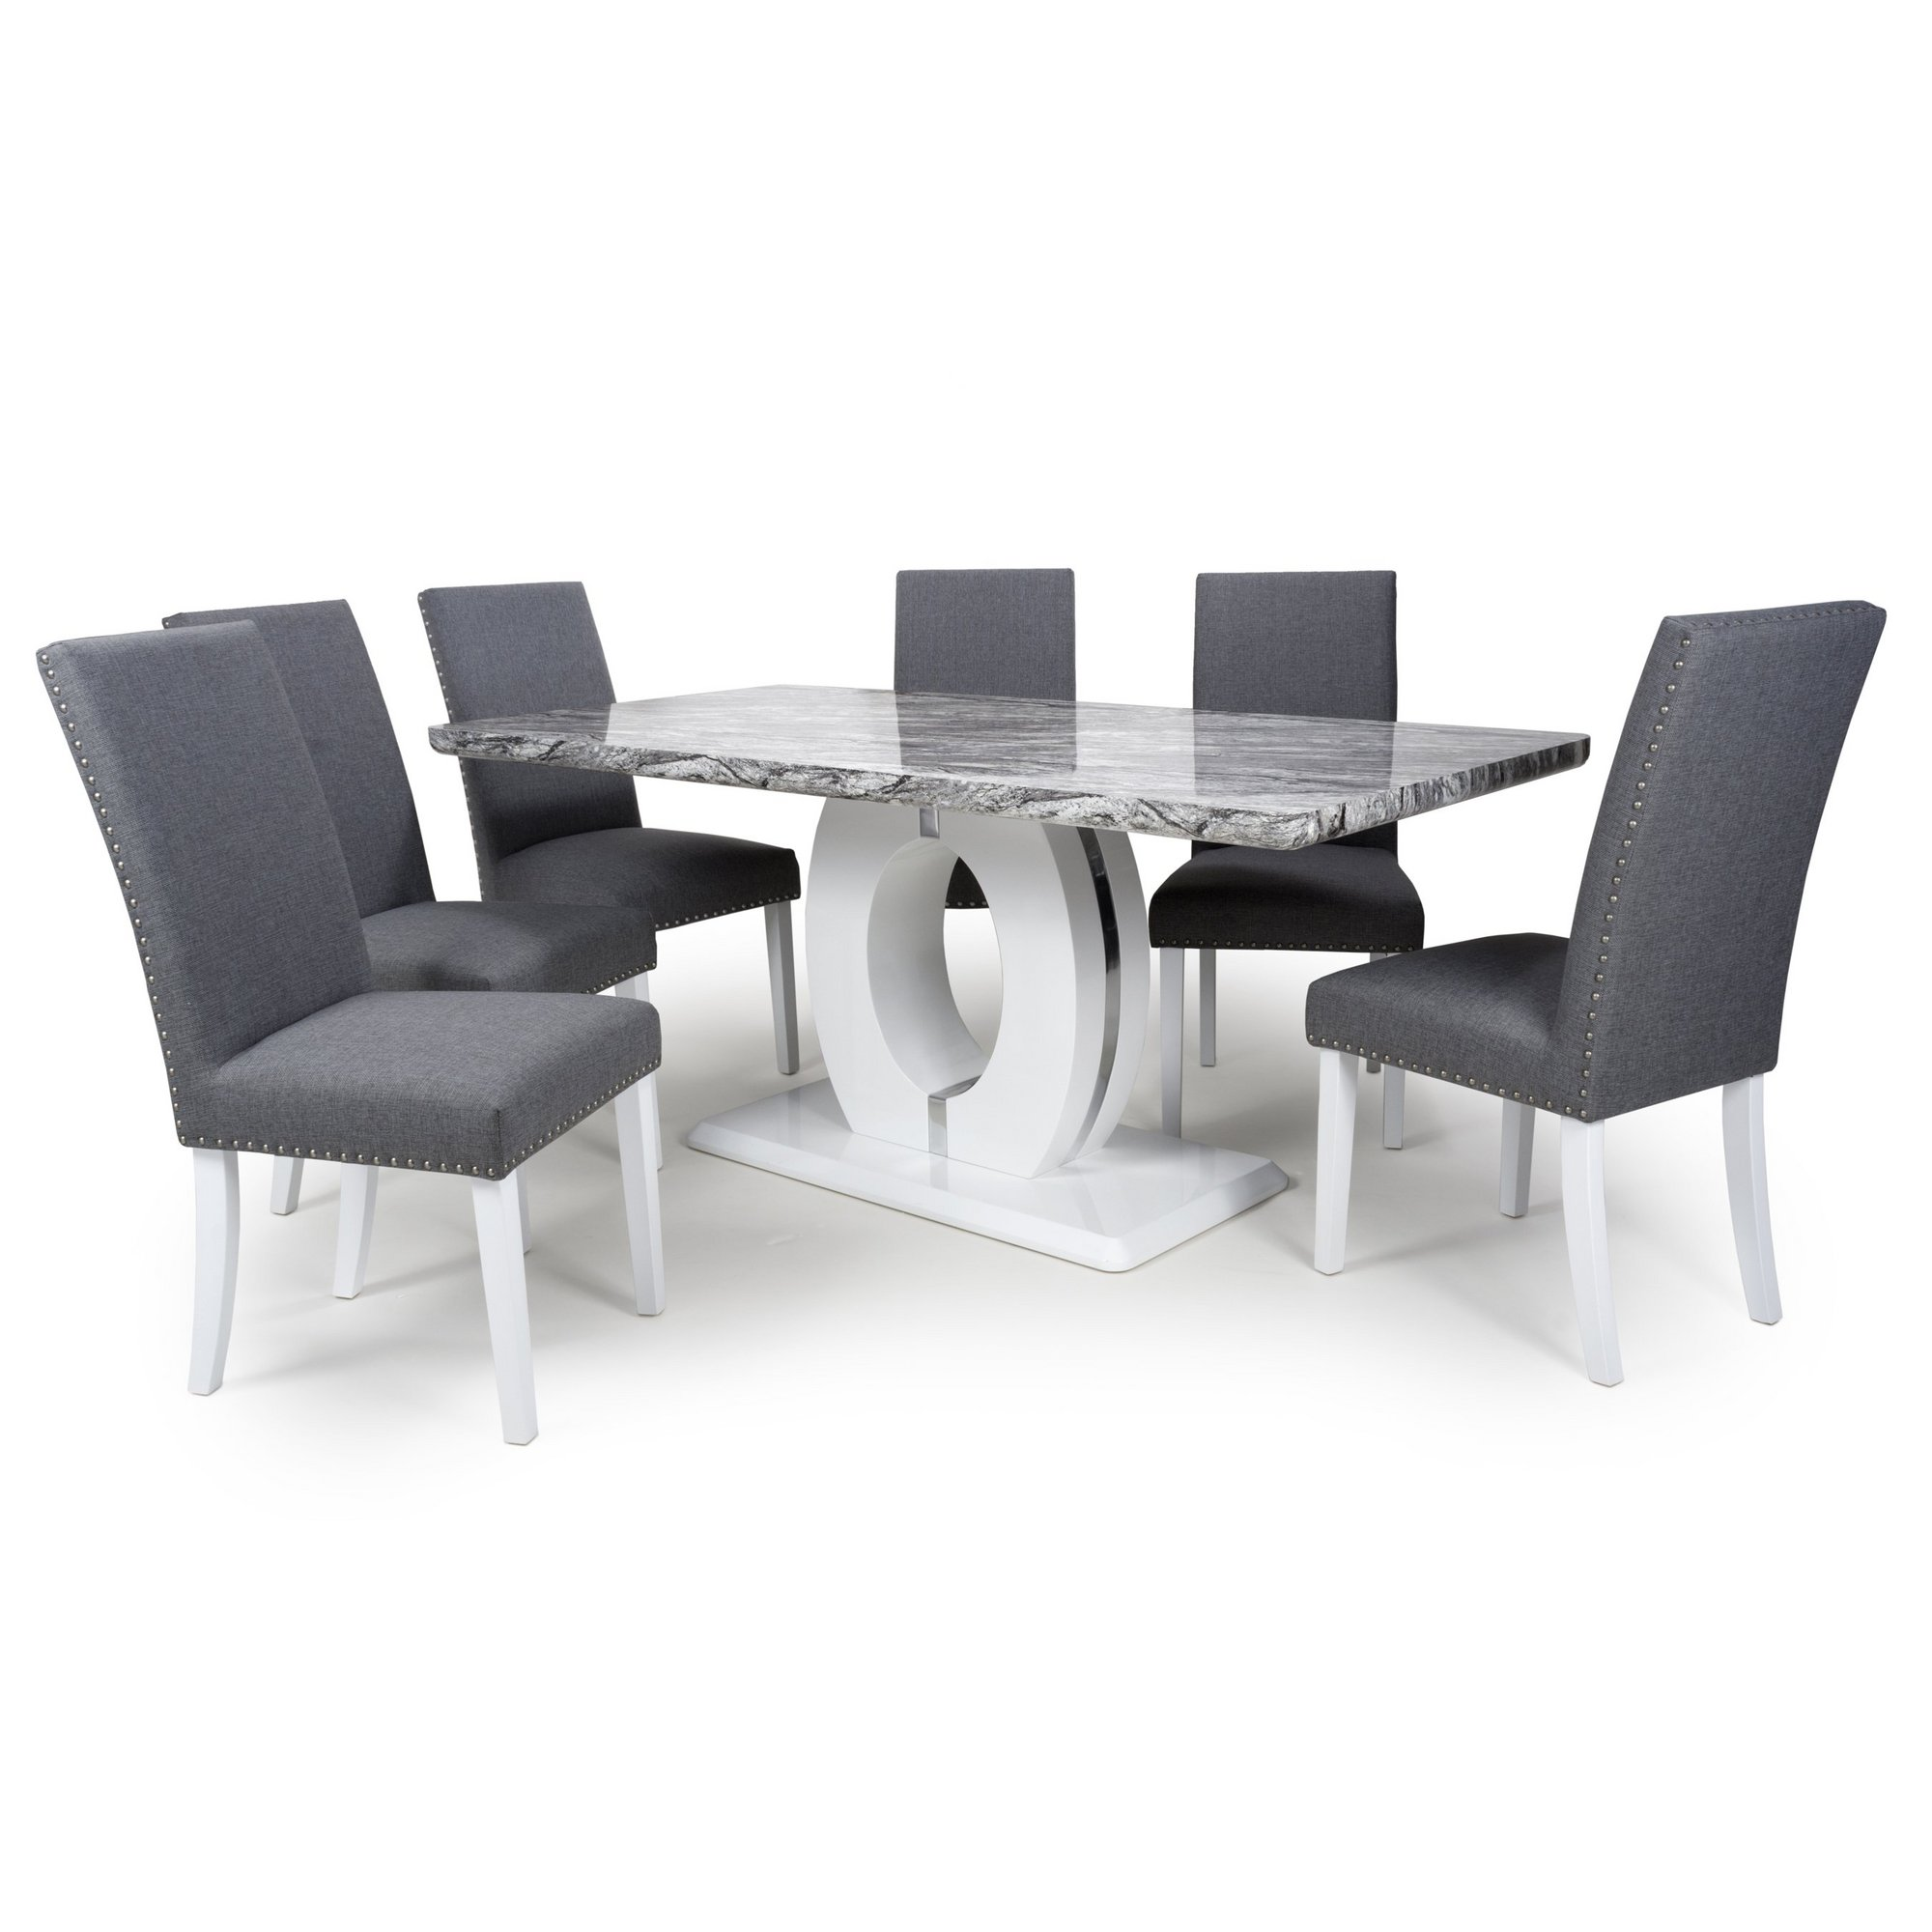 Image of Grey Marble Effect 5 Piece Large Dining Set with Randall Chairs